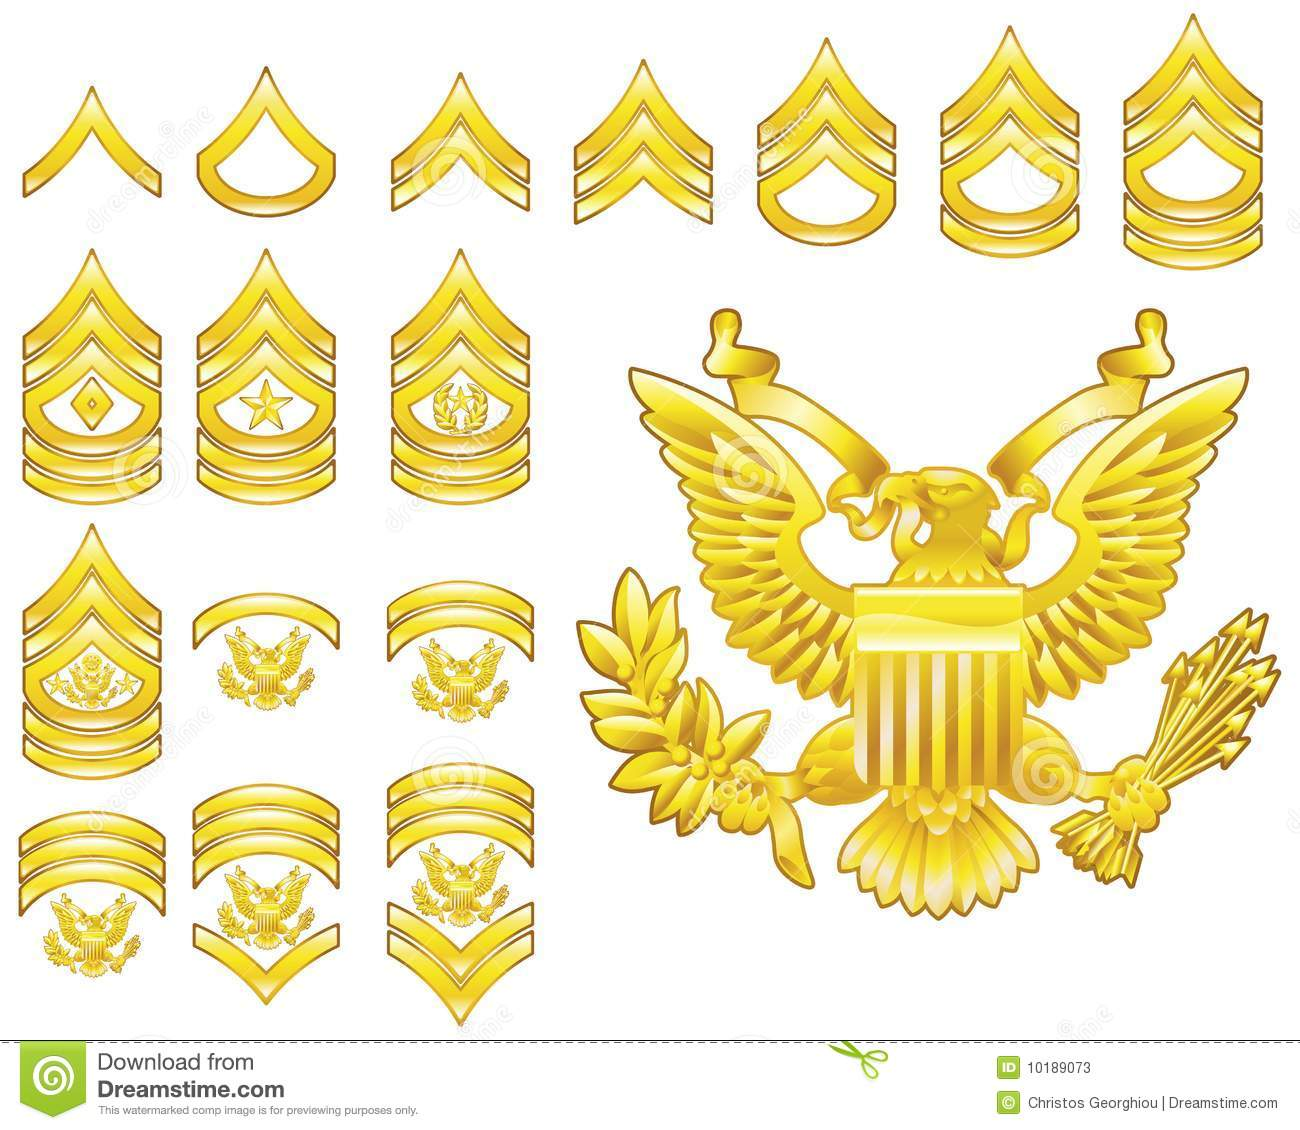 [Image: american-army-enlisted-rank-insignia-icons-10189073.jpg]